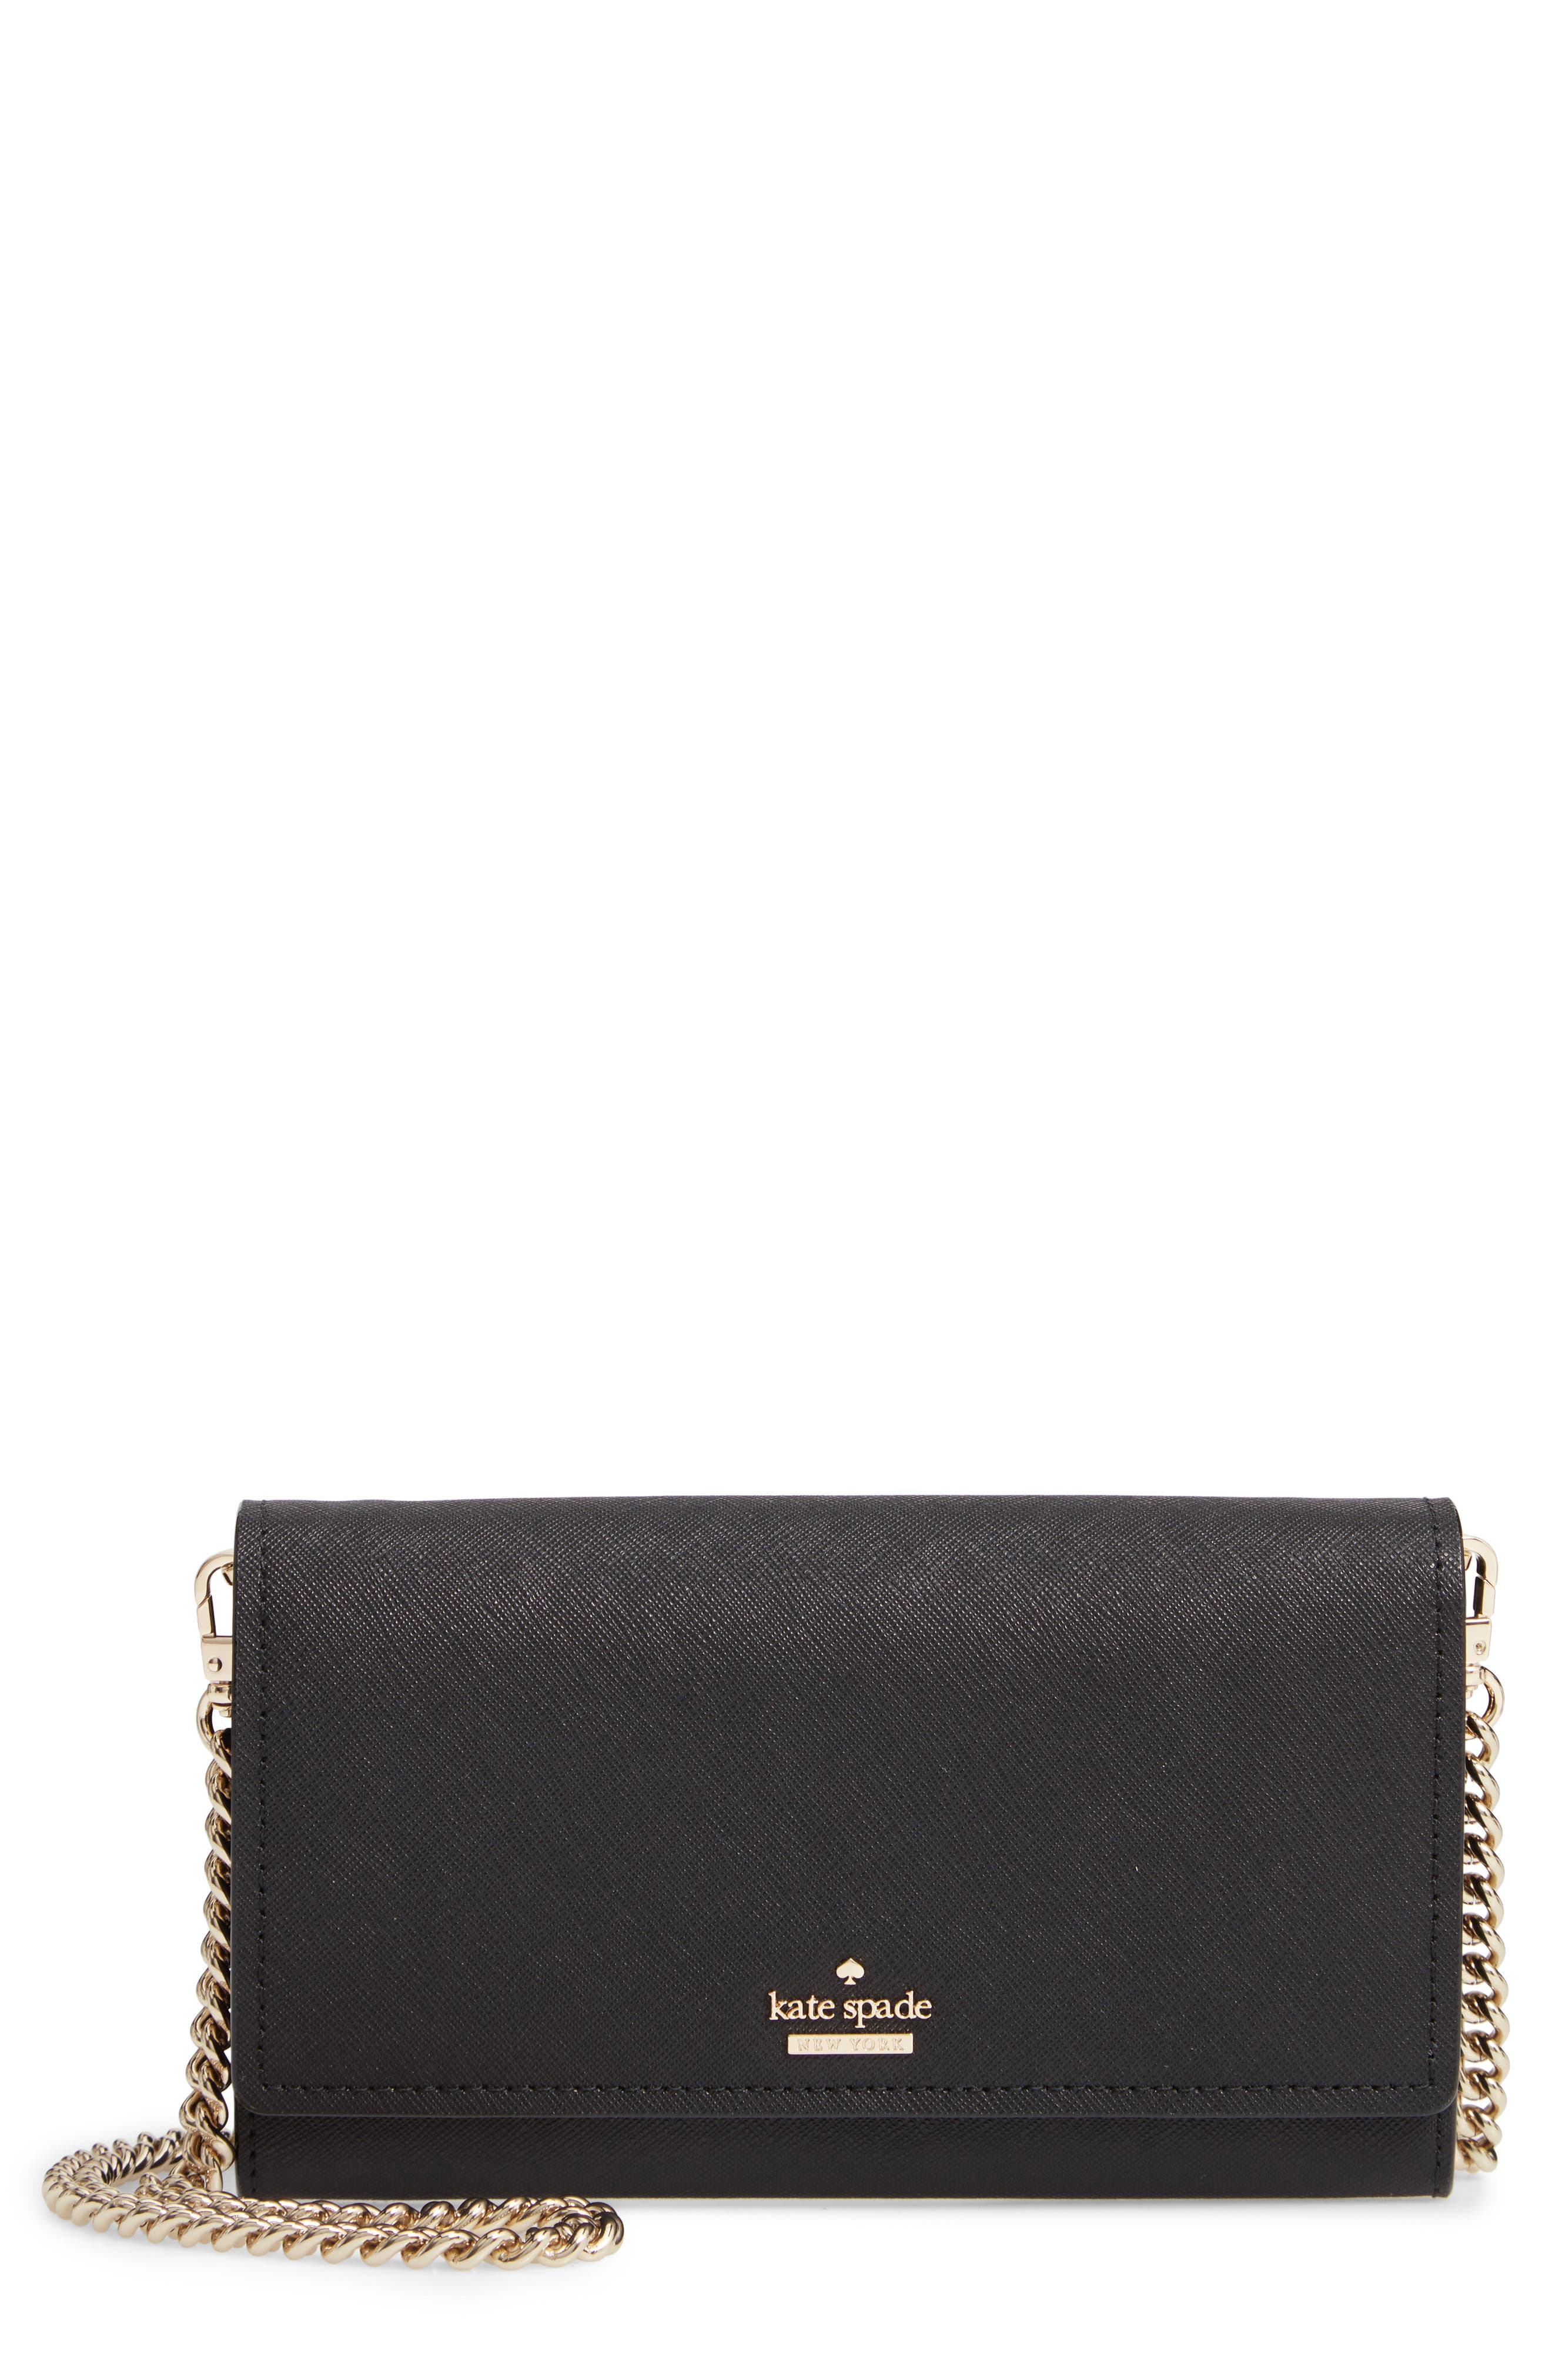 KATE SPADE NEW YORK, cameron street - franny leather wallet on a chain, Main thumbnail 1, color, 001